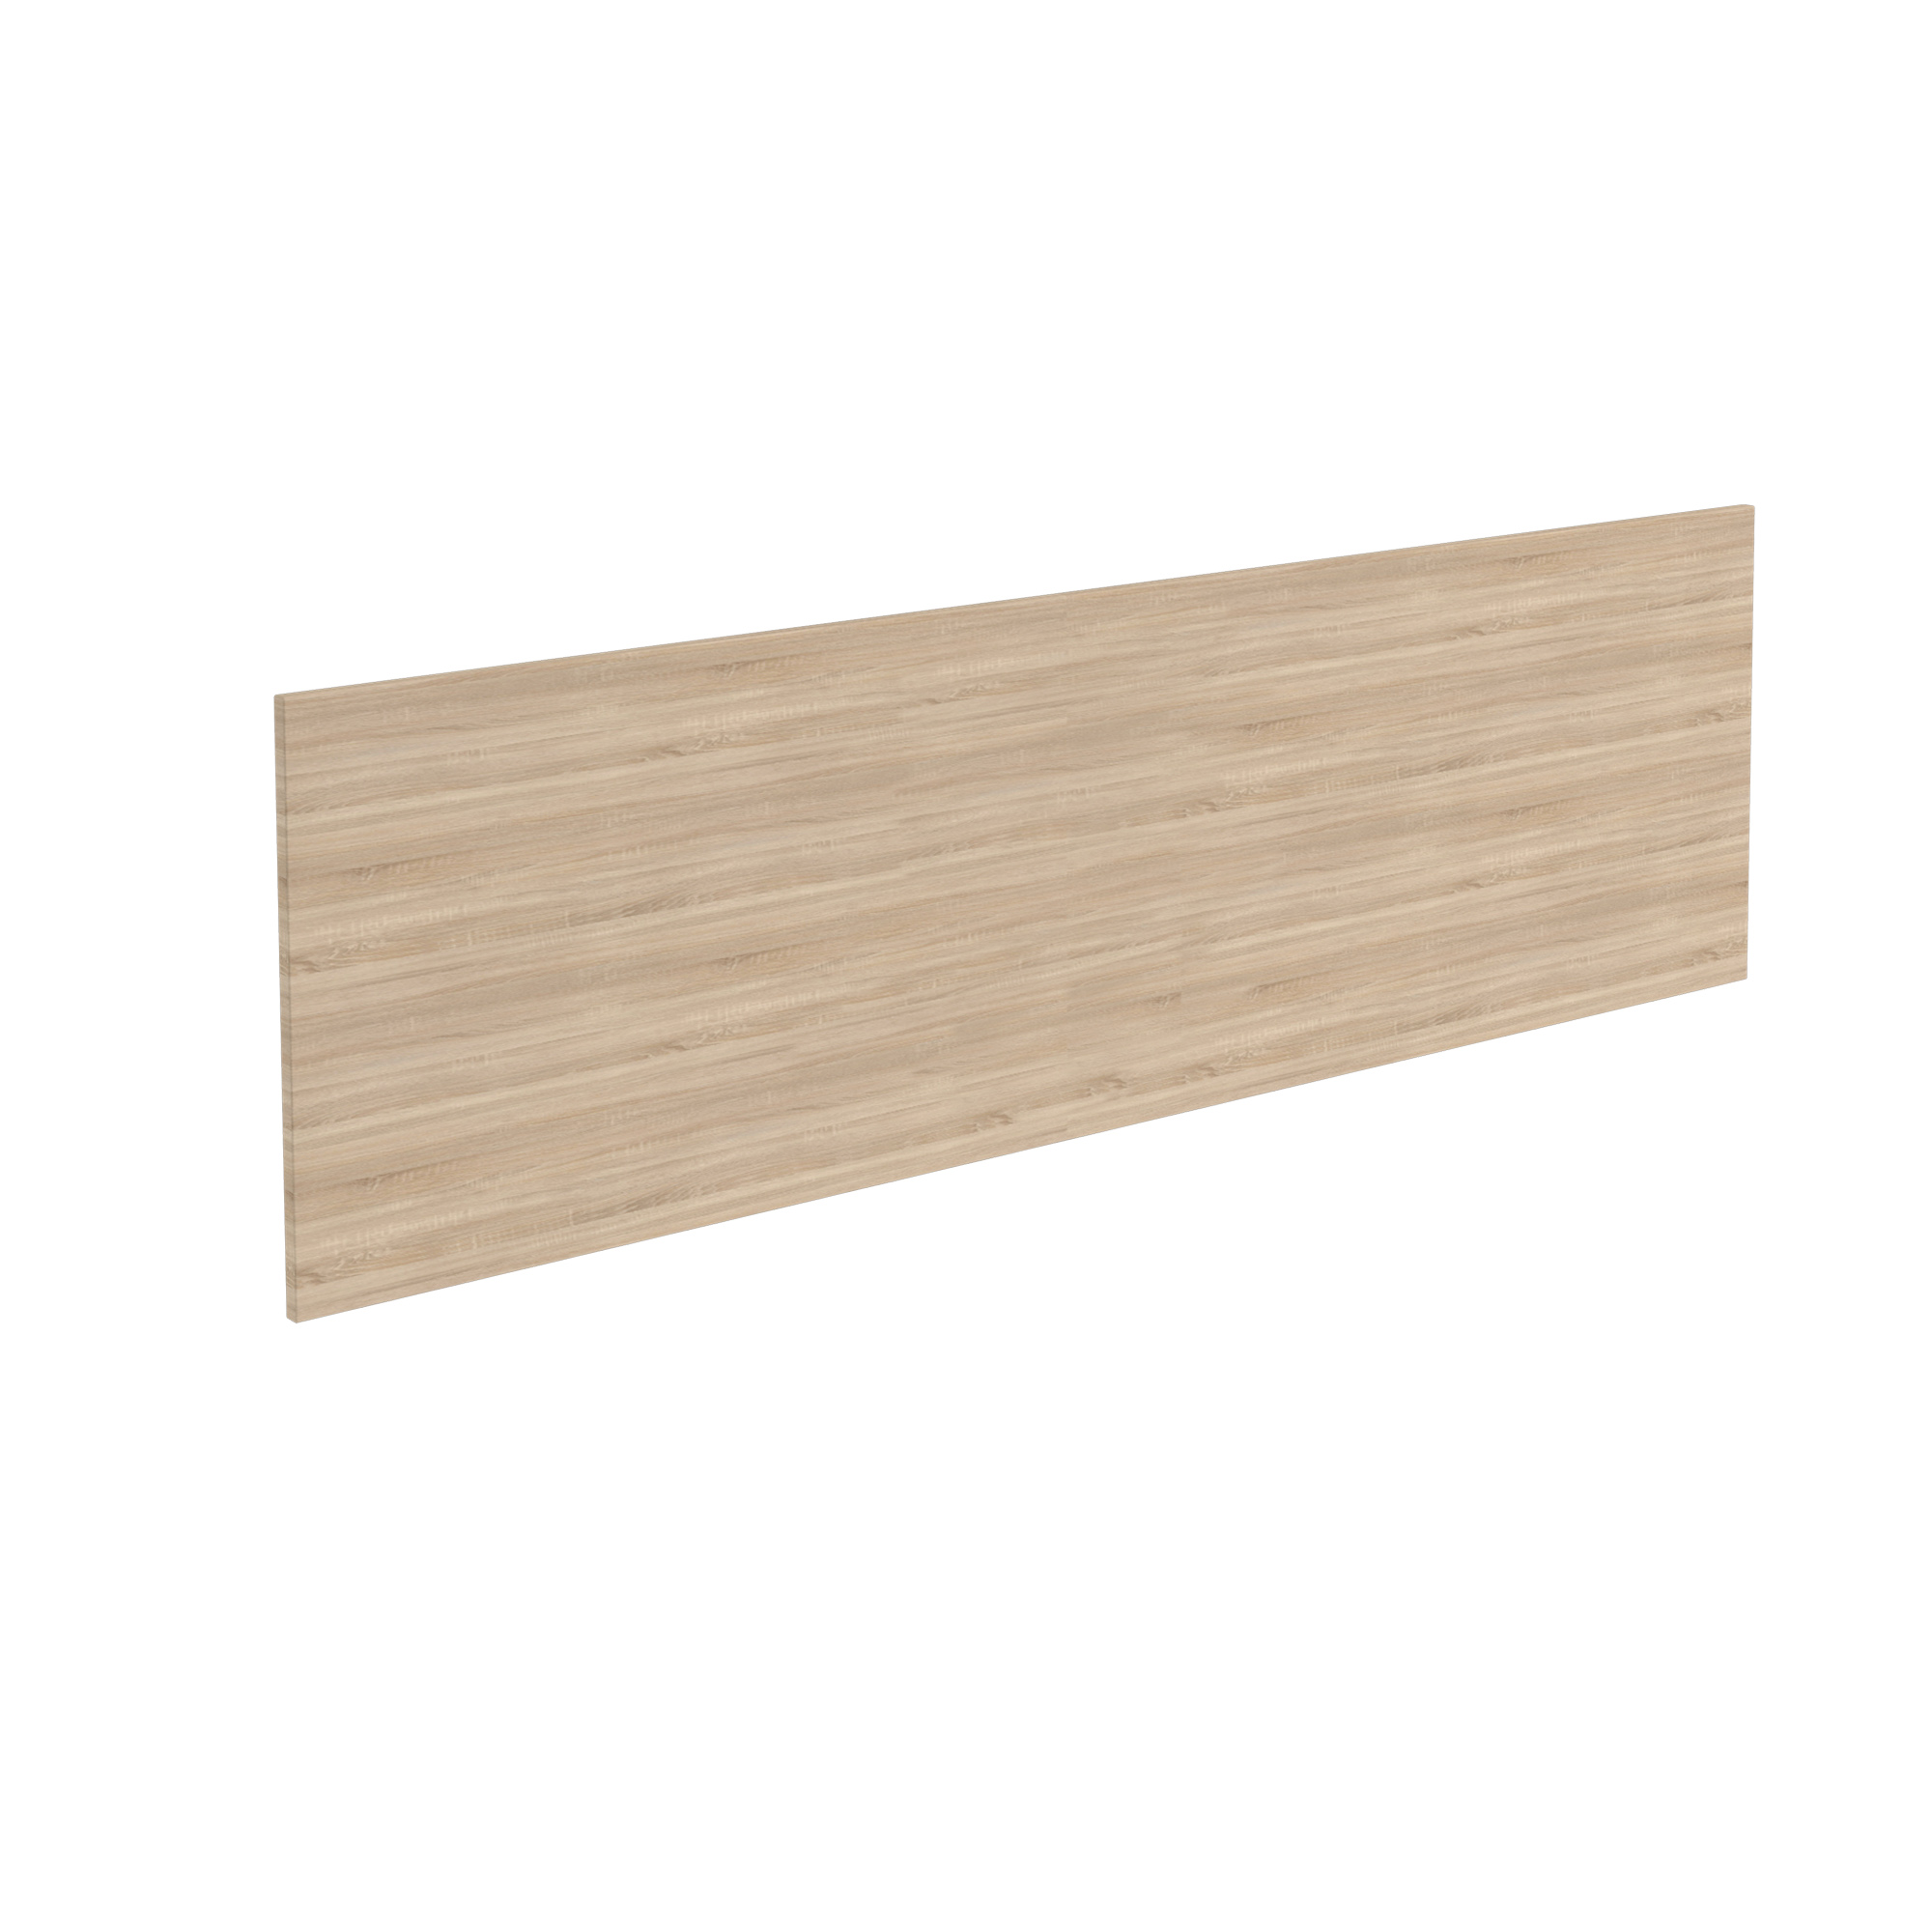 K-Vit Ikon 1800mm Bath Panel - Natural Oak